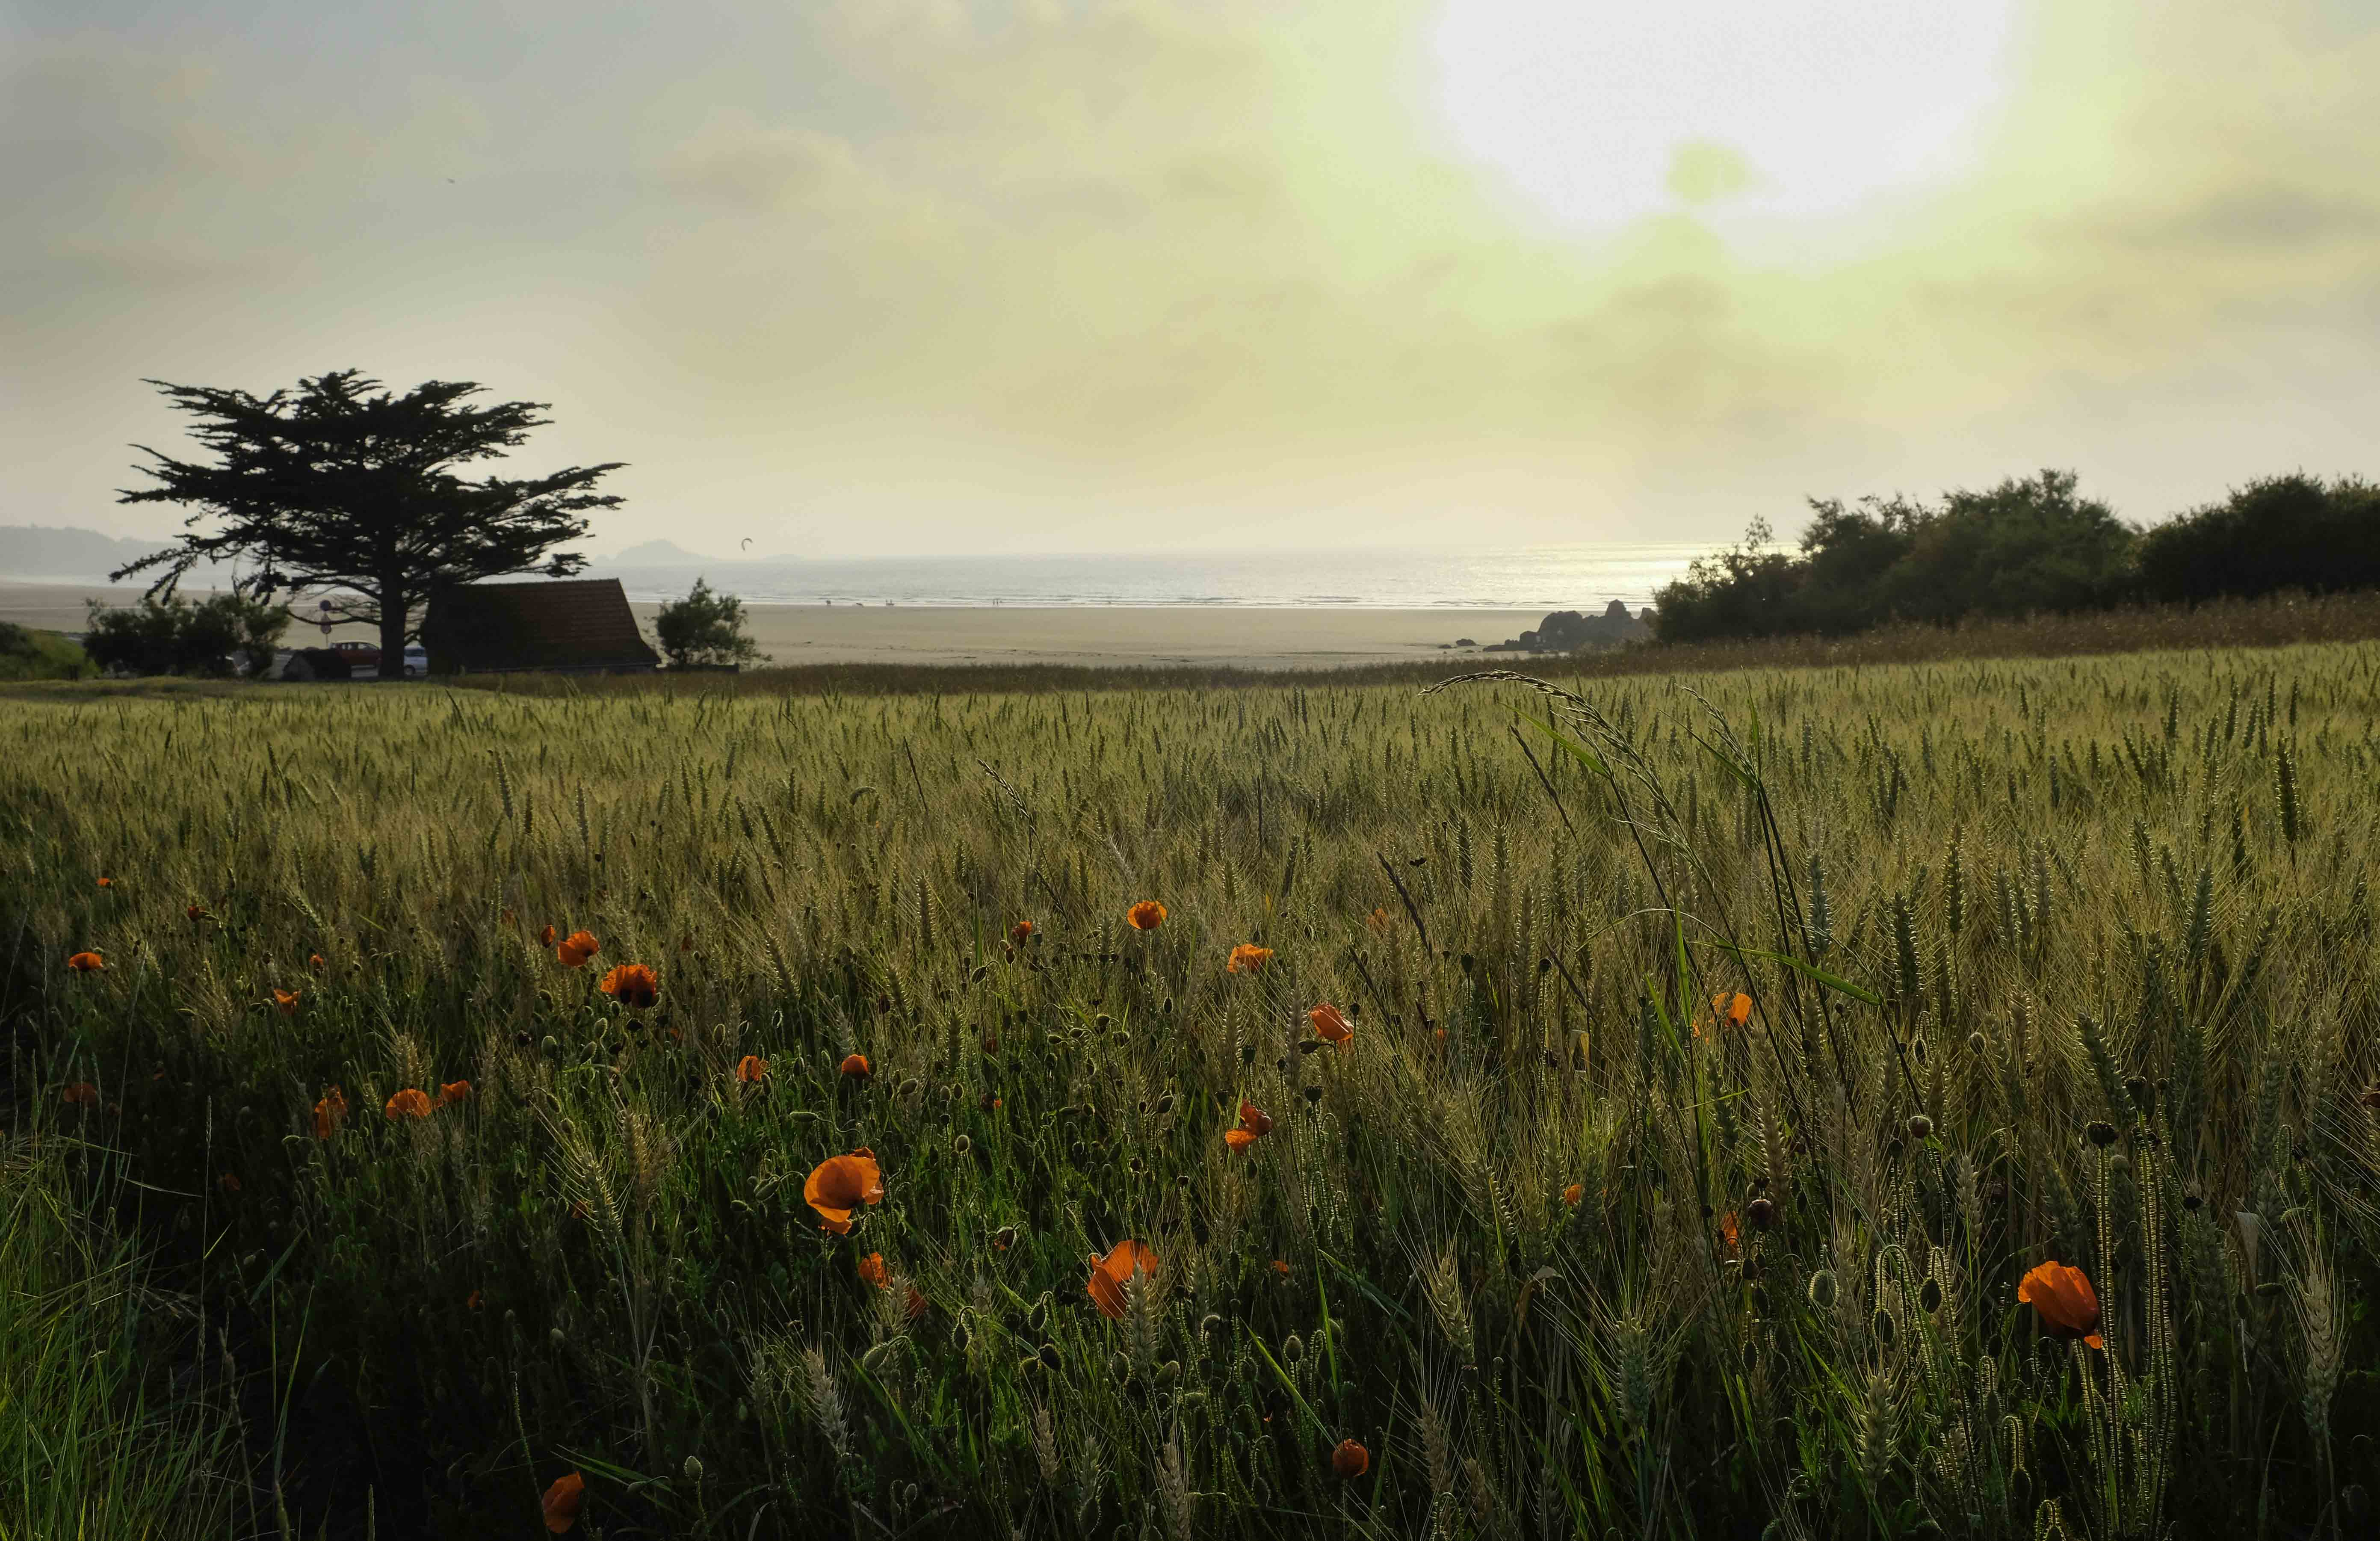 glowing-poppies-in-a-cornfield-in-the-background-the-sea-and-beach